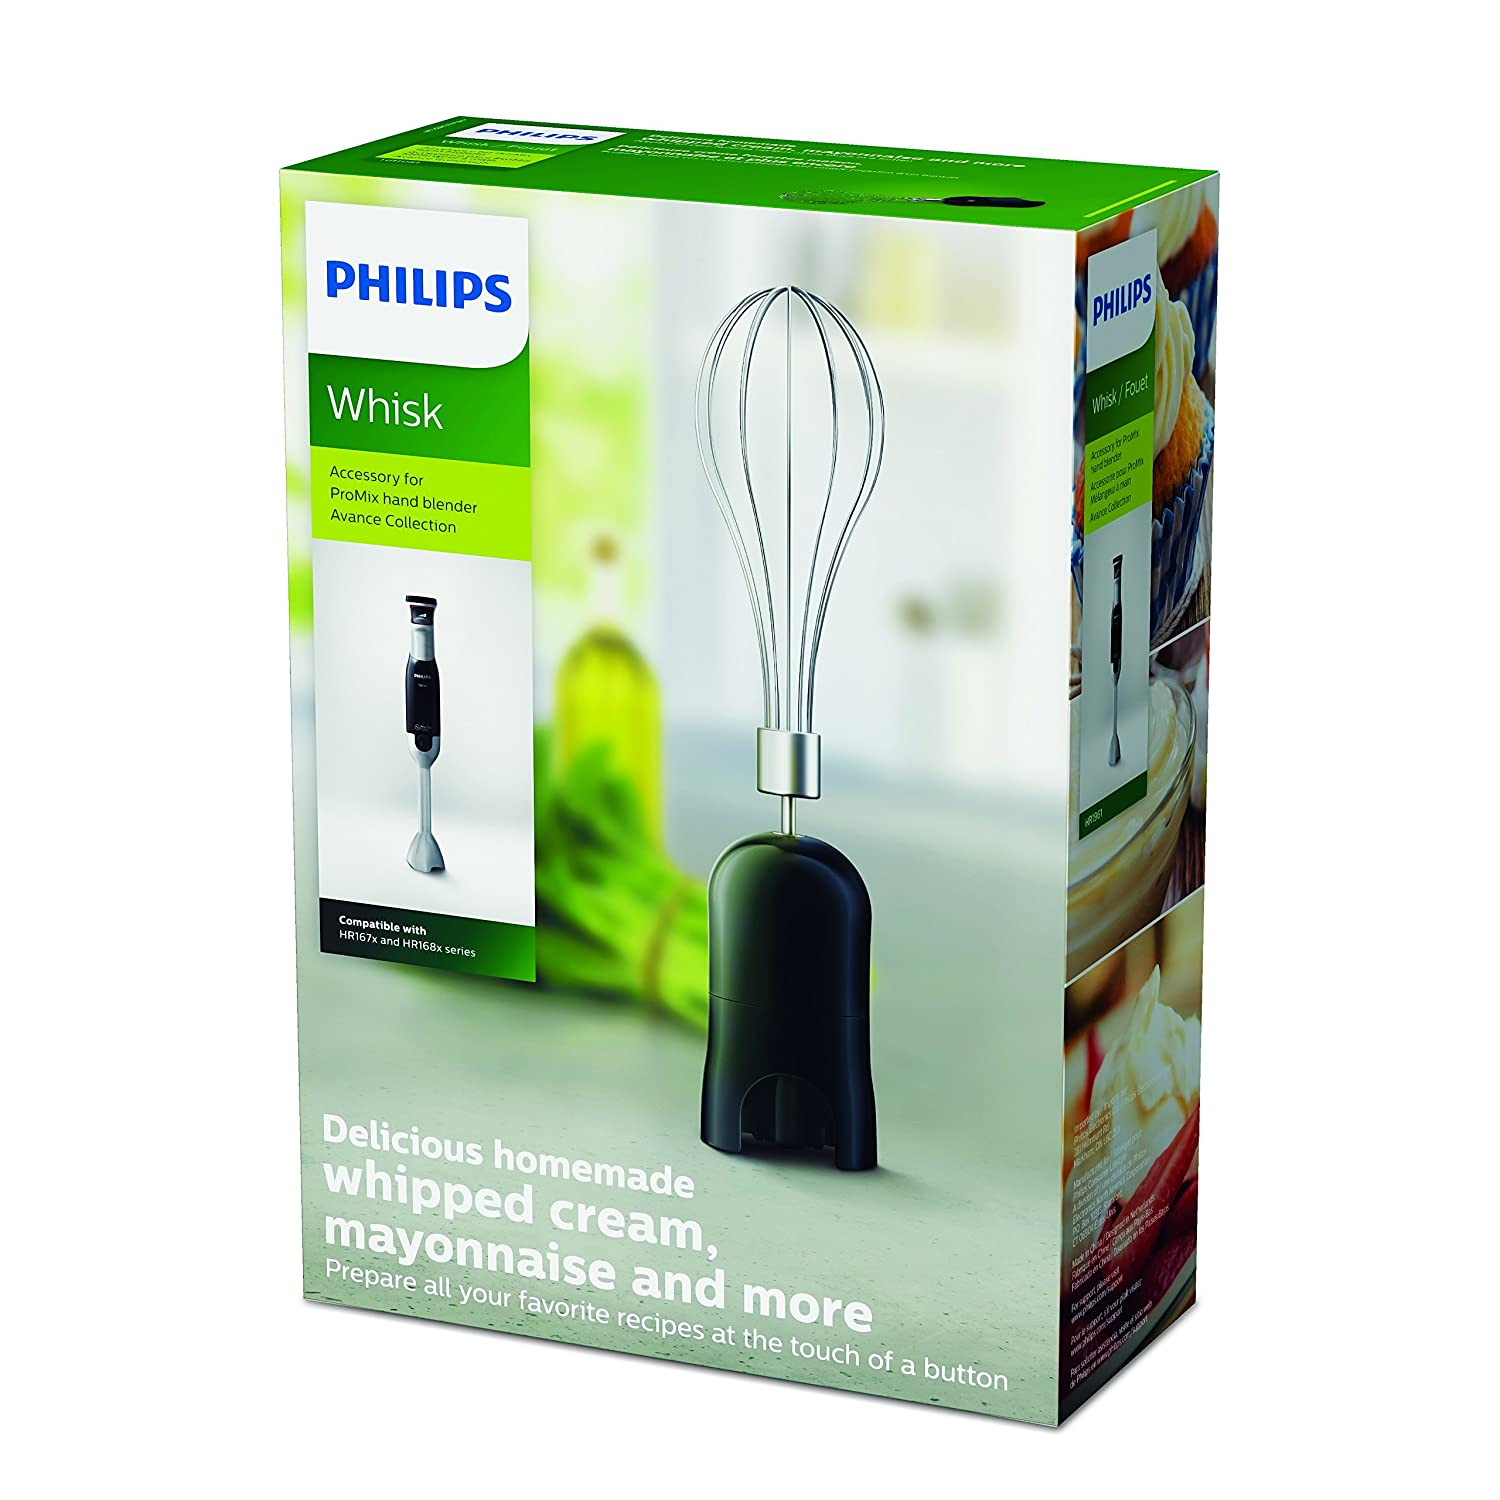 Philips Chopper Accessory for Promix Hand Blender Avance Collection HR1966//92